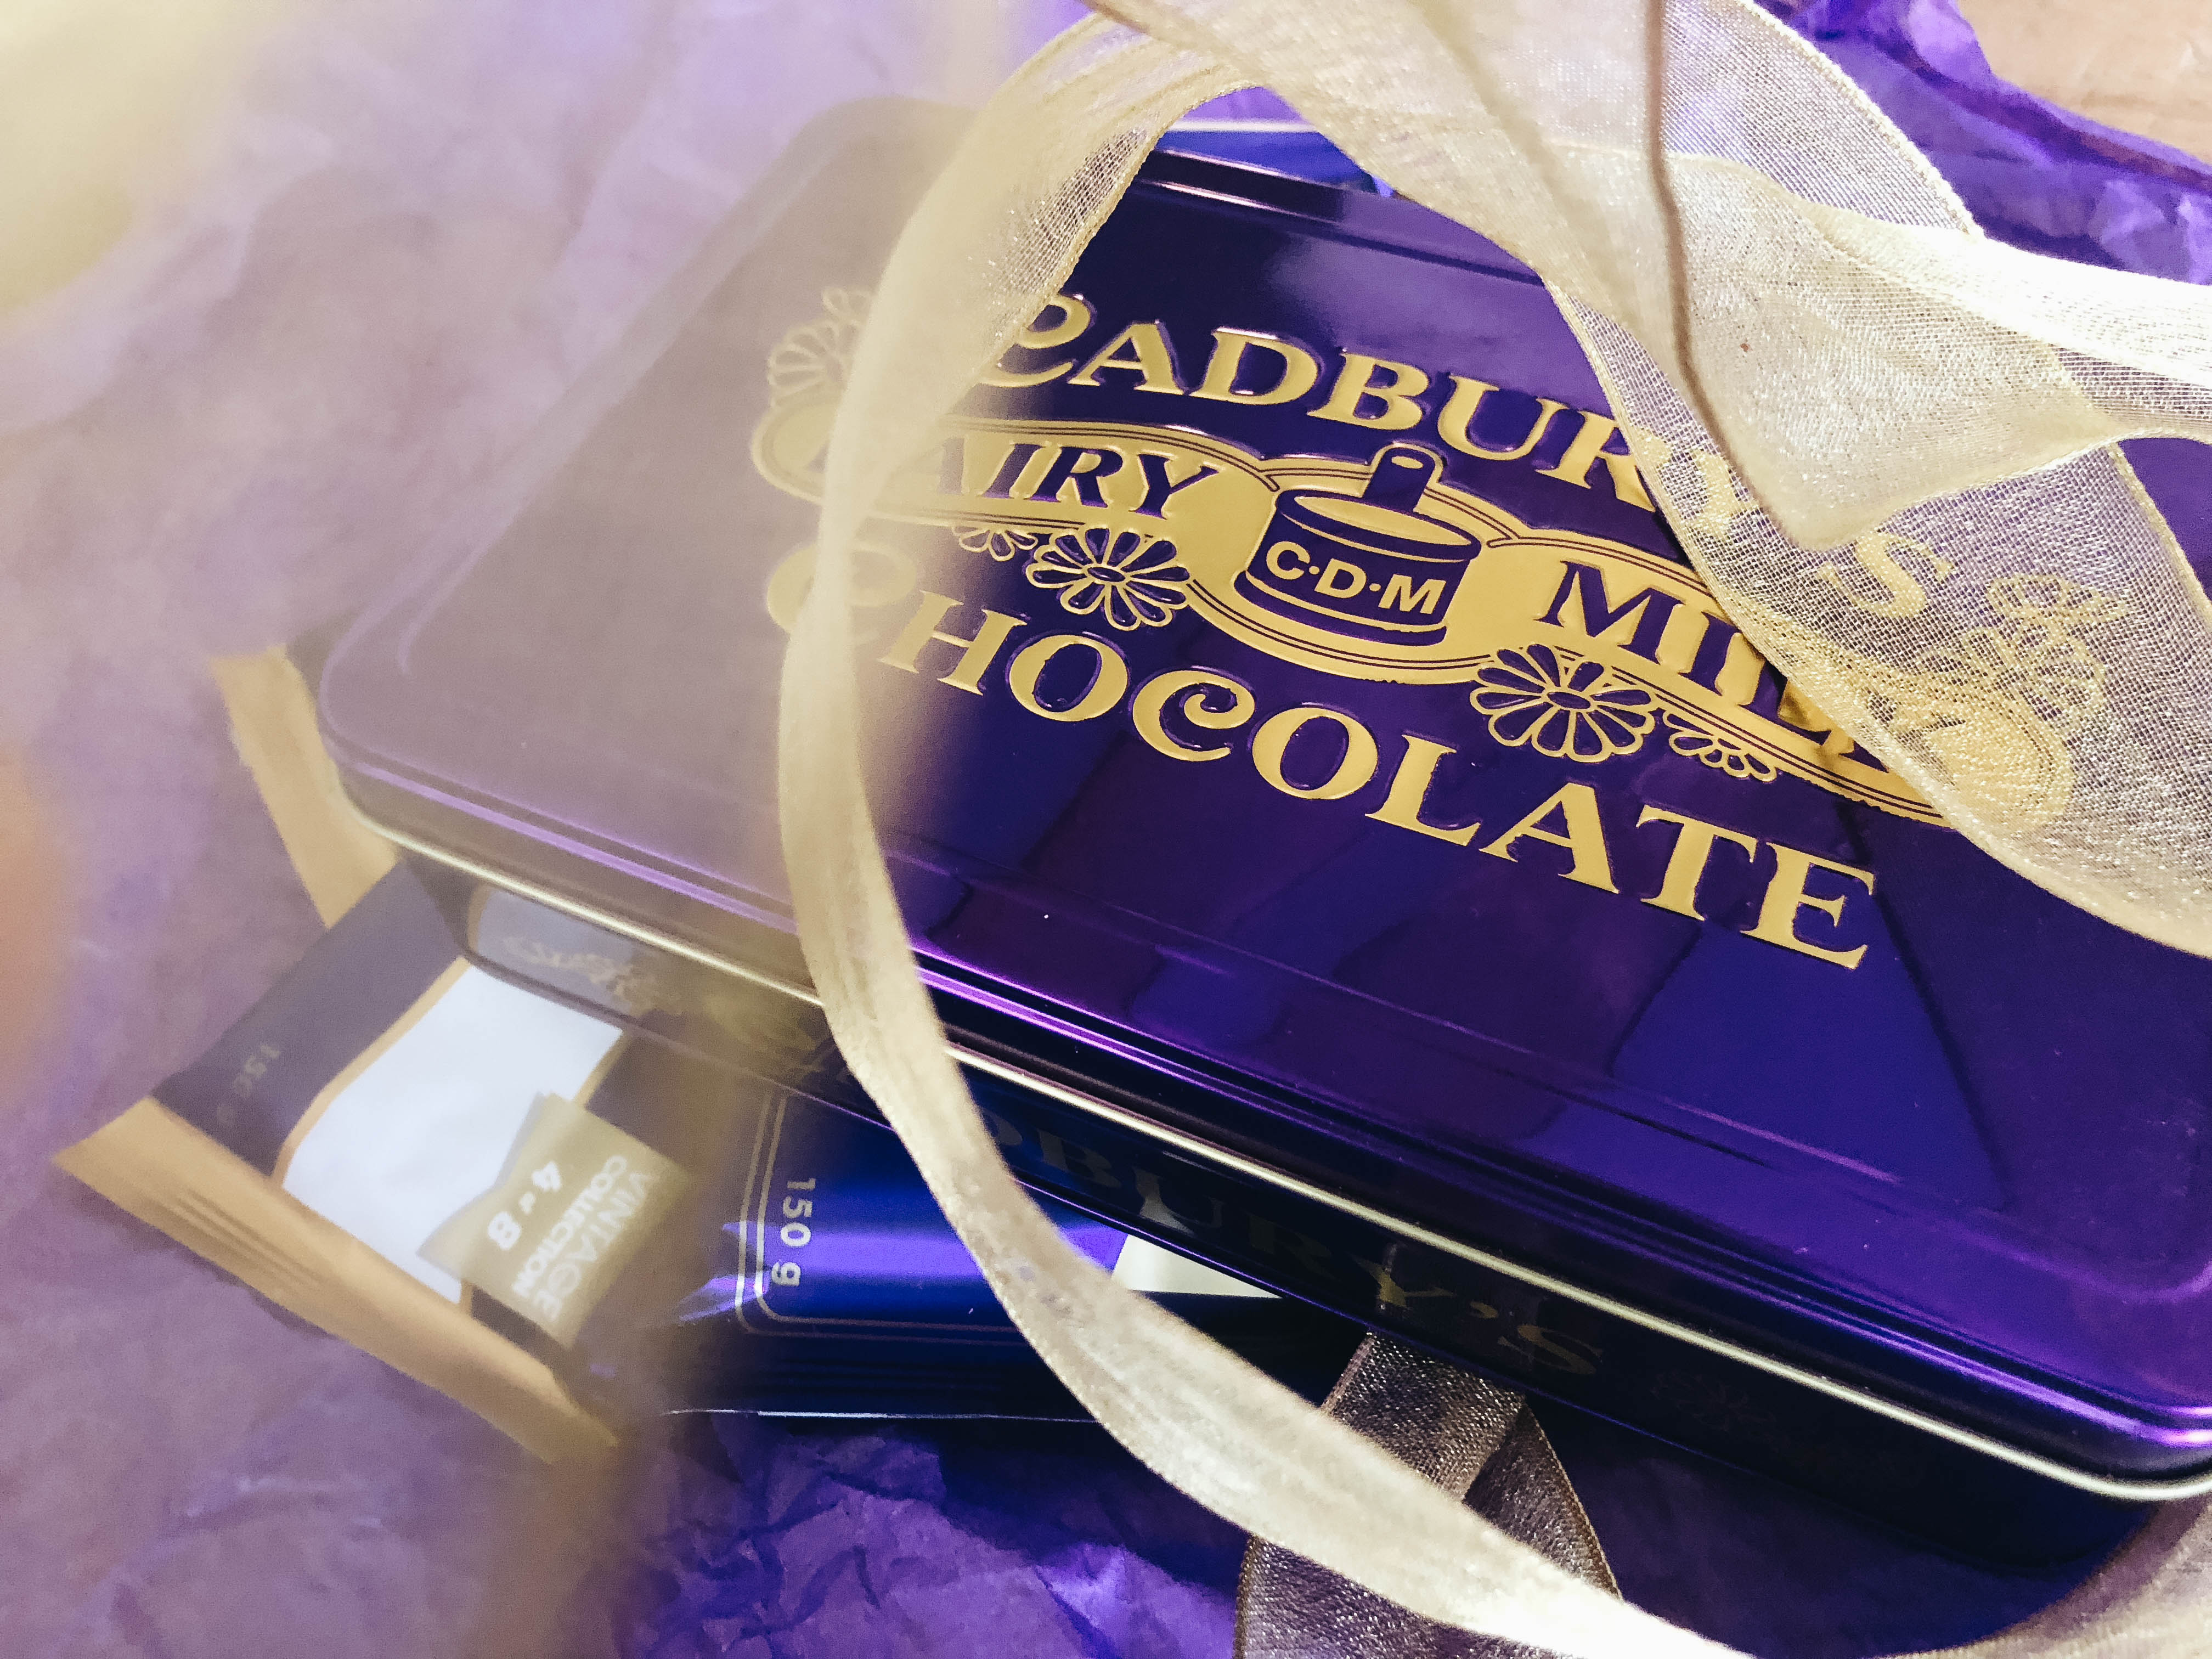 Cadbury Vintage Collection